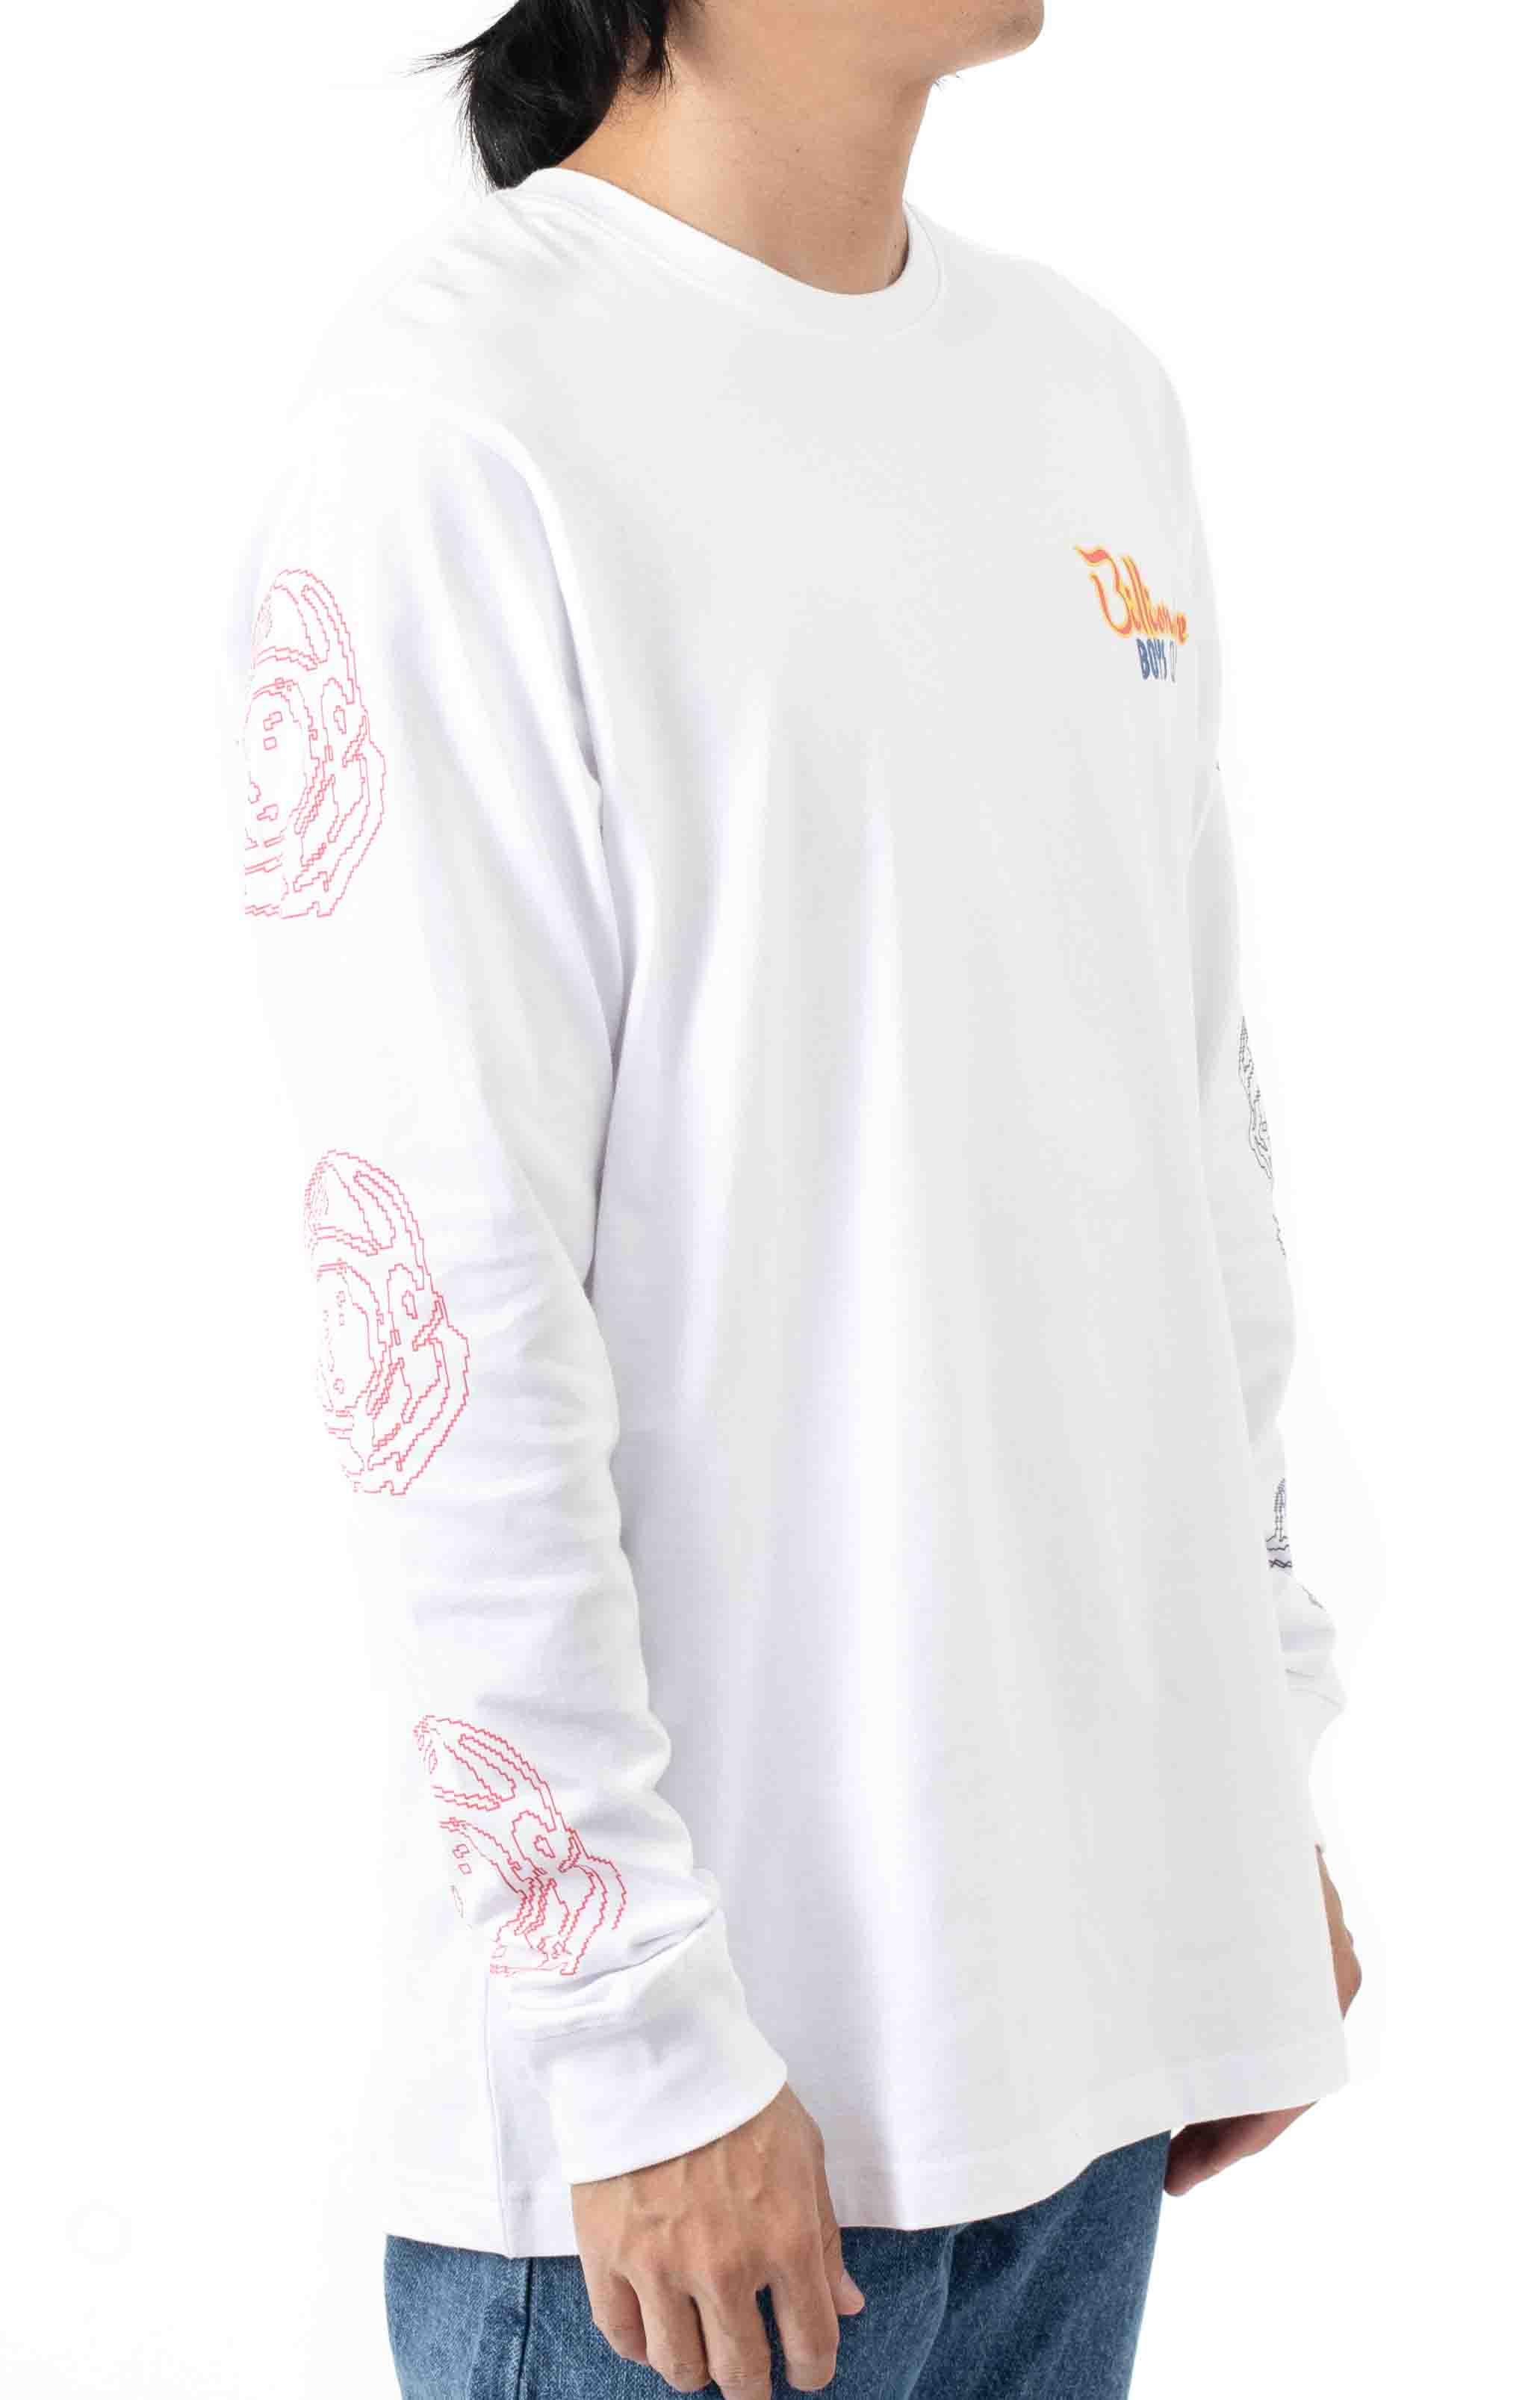 Heart and Mind L/S Shirt - White  4